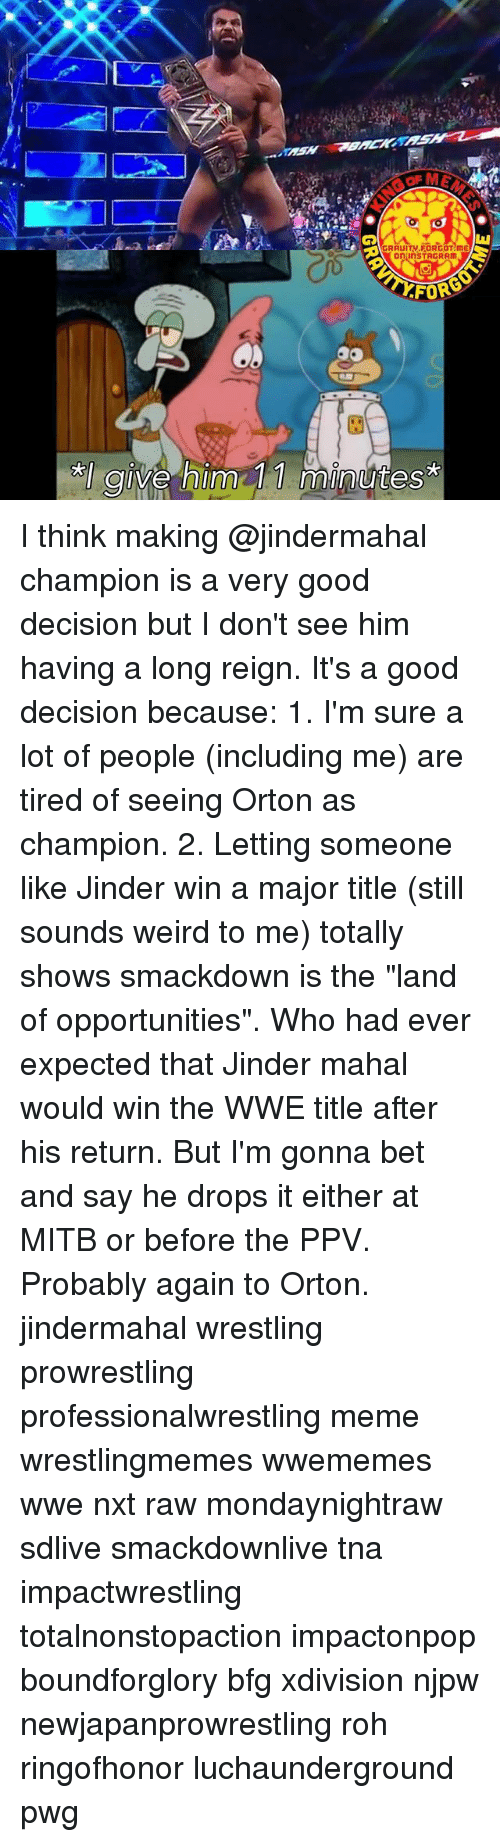 """Instagram, Meme, and Memes: AGRAUITM FORGOT ME  on InSTAGRAM  FOR  Ive Inn  mint I think making @jindermahal champion is a very good decision but I don't see him having a long reign. It's a good decision because: 1. I'm sure a lot of people (including me) are tired of seeing Orton as champion. 2. Letting someone like Jinder win a major title (still sounds weird to me) totally shows smackdown is the """"land of opportunities"""". Who had ever expected that Jinder mahal would win the WWE title after his return. But I'm gonna bet and say he drops it either at MITB or before the PPV. Probably again to Orton. jindermahal wrestling prowrestling professionalwrestling meme wrestlingmemes wwememes wwe nxt raw mondaynightraw sdlive smackdownlive tna impactwrestling totalnonstopaction impactonpop boundforglory bfg xdivision njpw newjapanprowrestling roh ringofhonor luchaunderground pwg"""